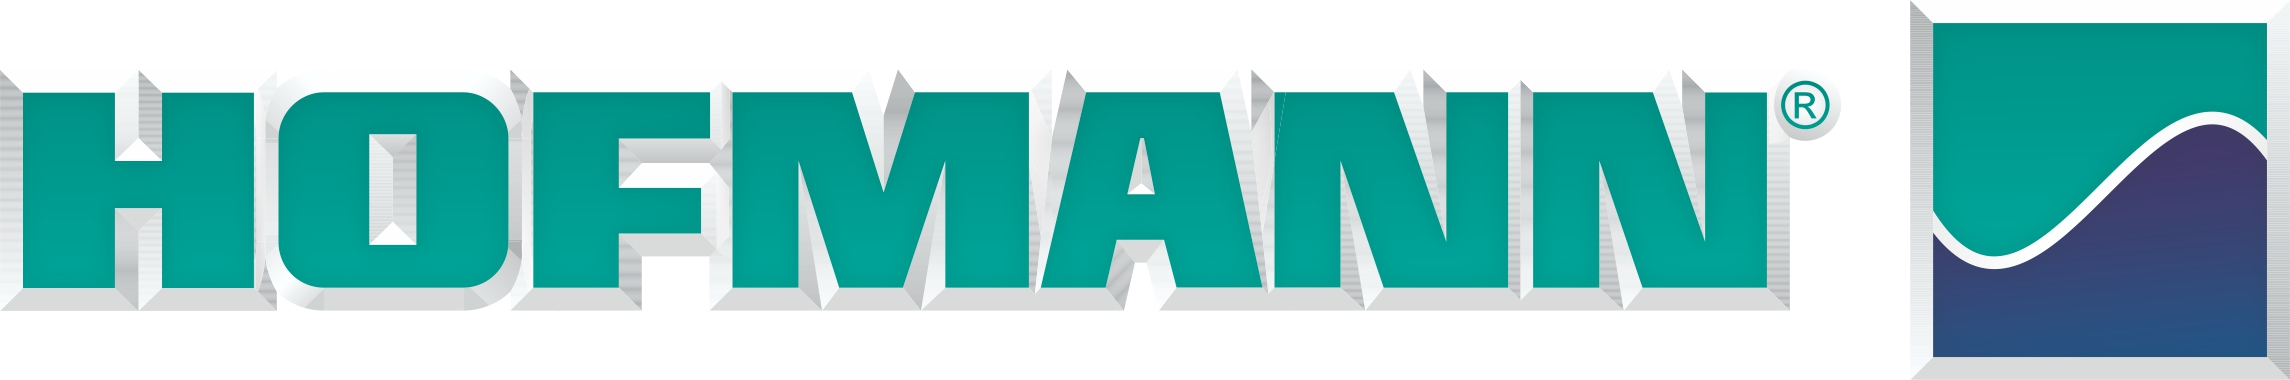 logo-nederman-cyan